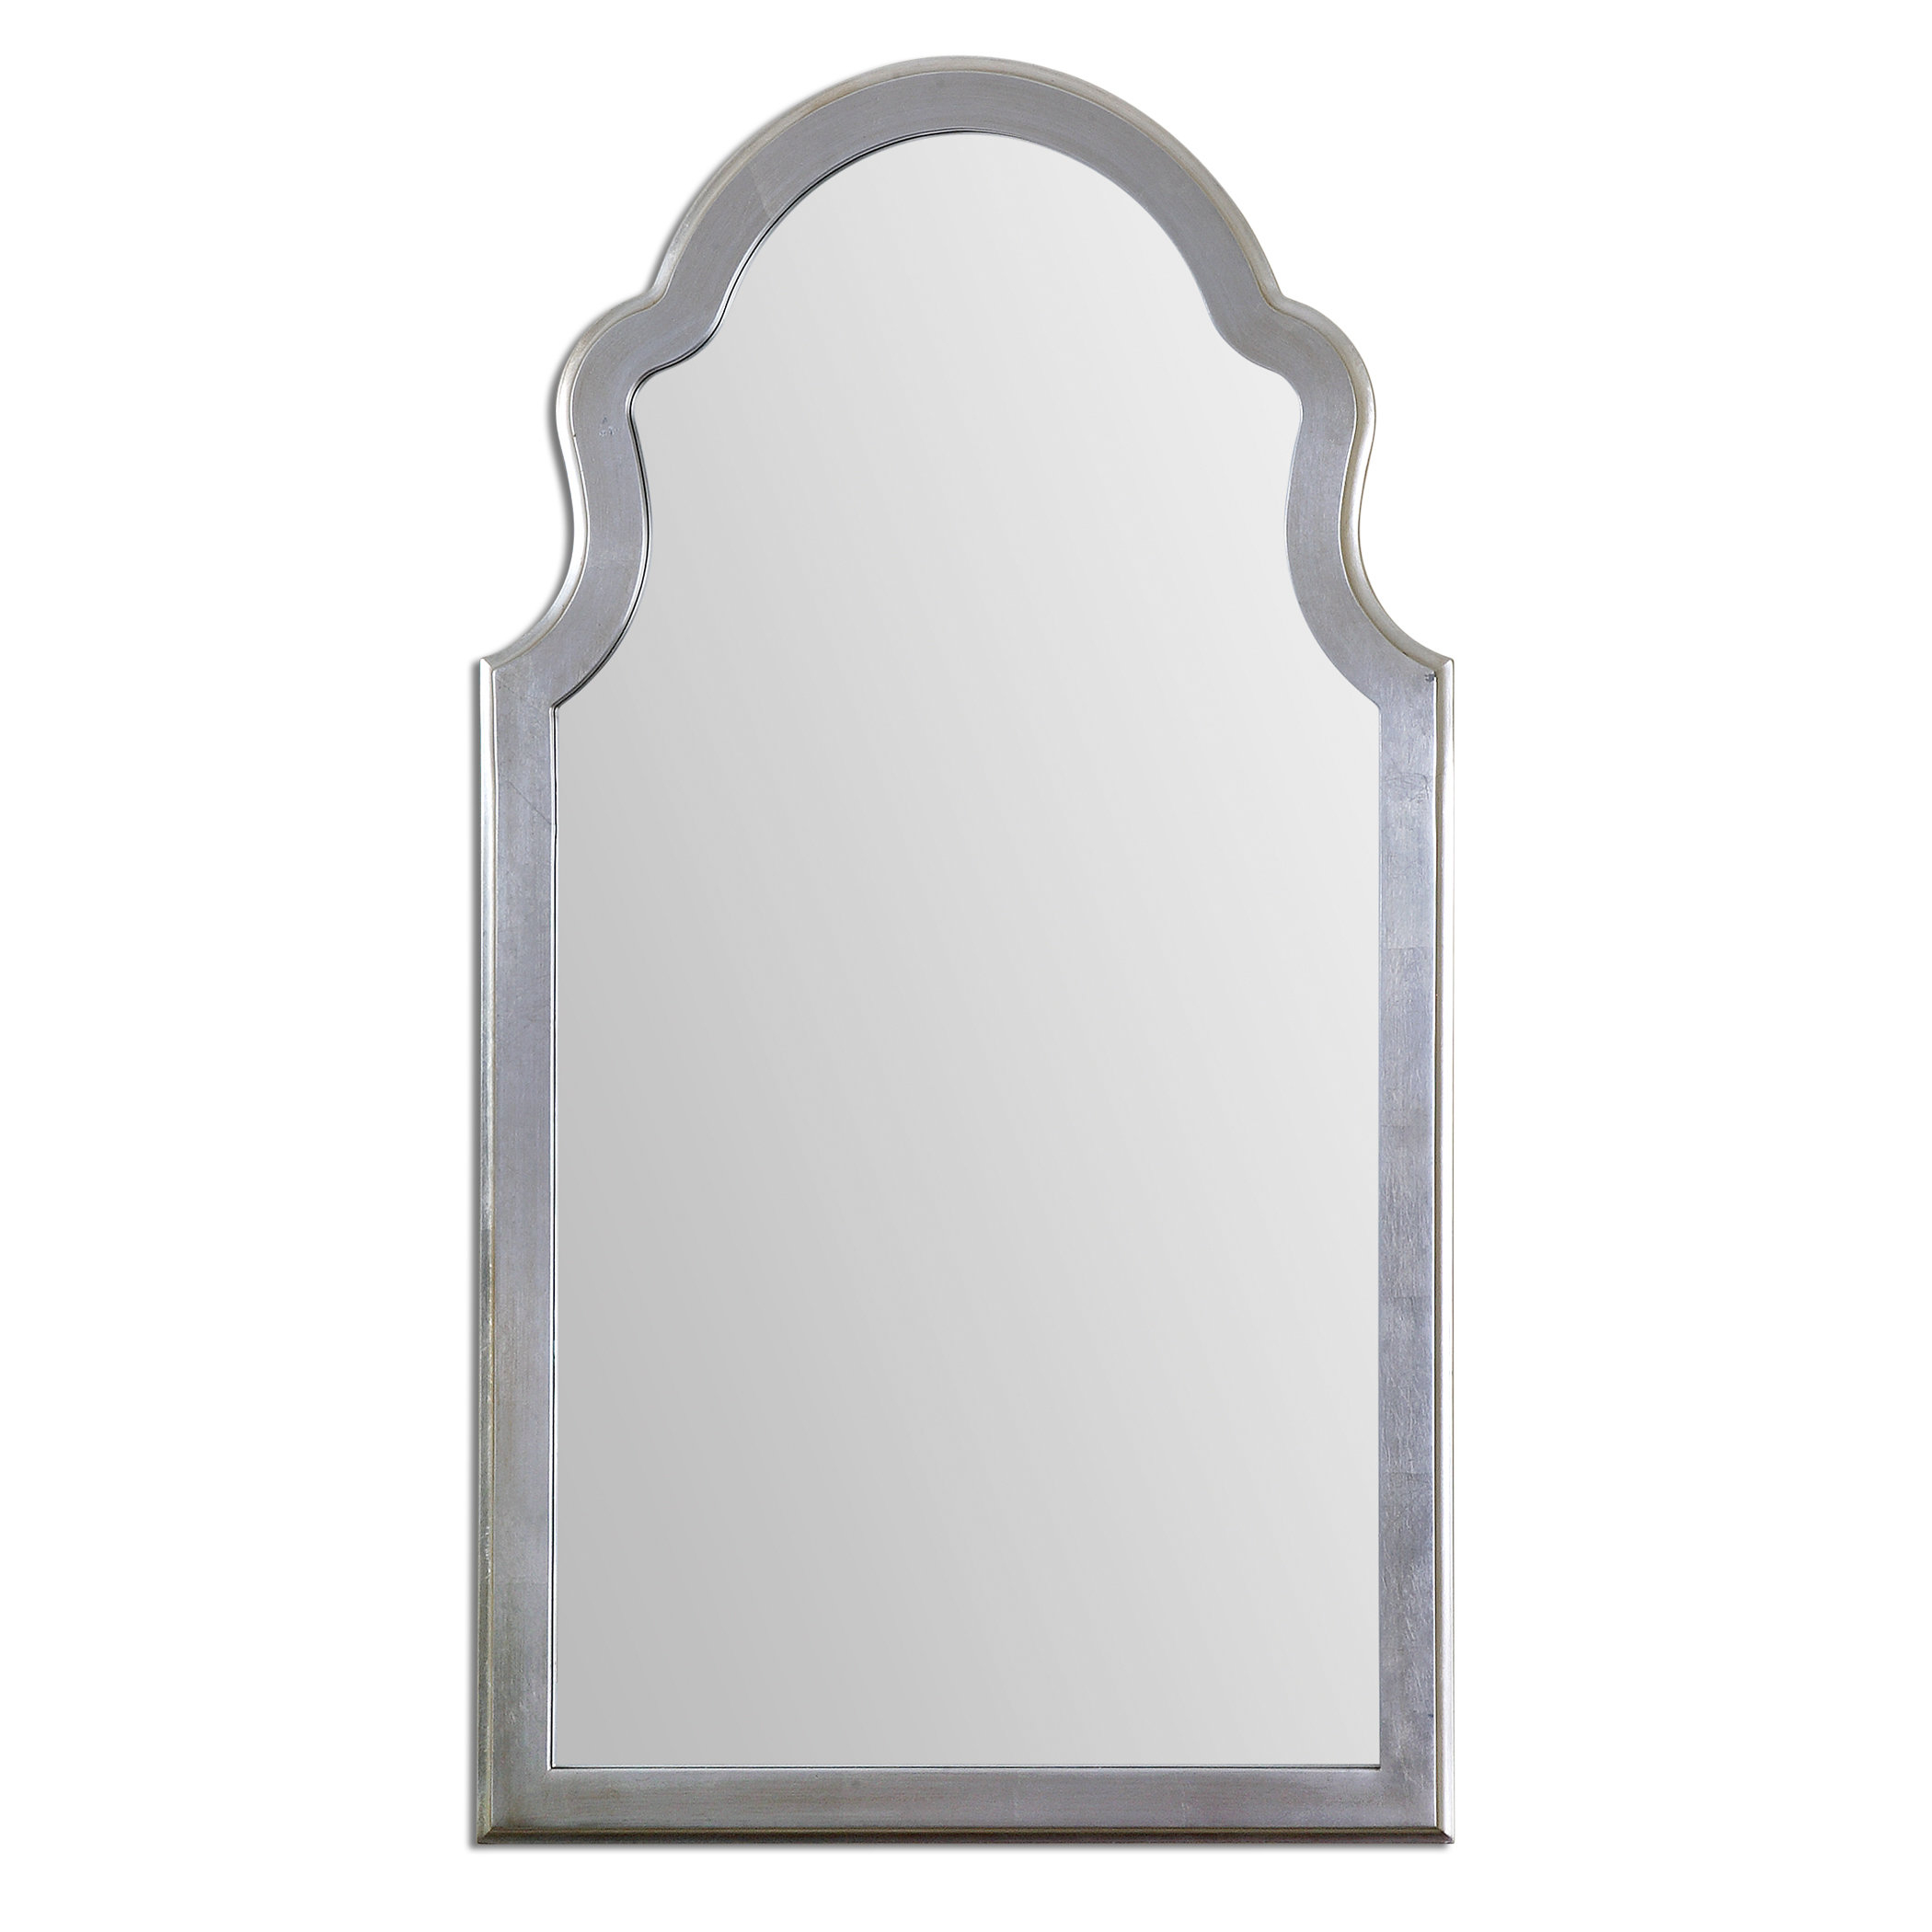 Farmhouse & Rustic Arch / Crowned Top Wall & Accent Mirrors In Dariel Tall Arched Scalloped Wall Mirrors (Image 9 of 20)